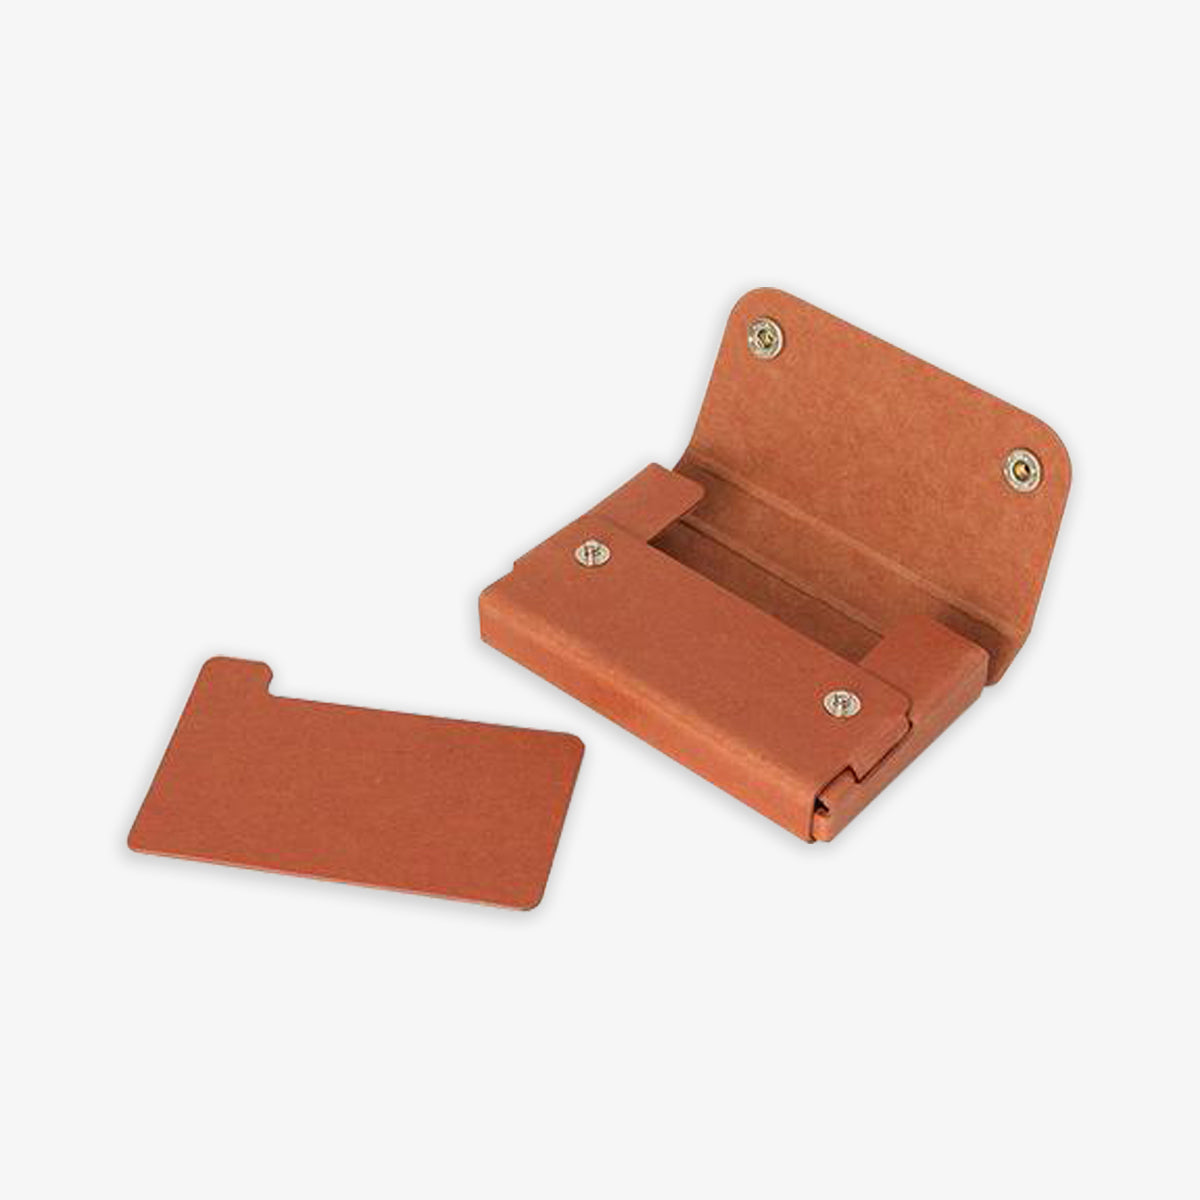 products/Midori_PS_CardCase_Pasco_Orange-tan_02.jpg